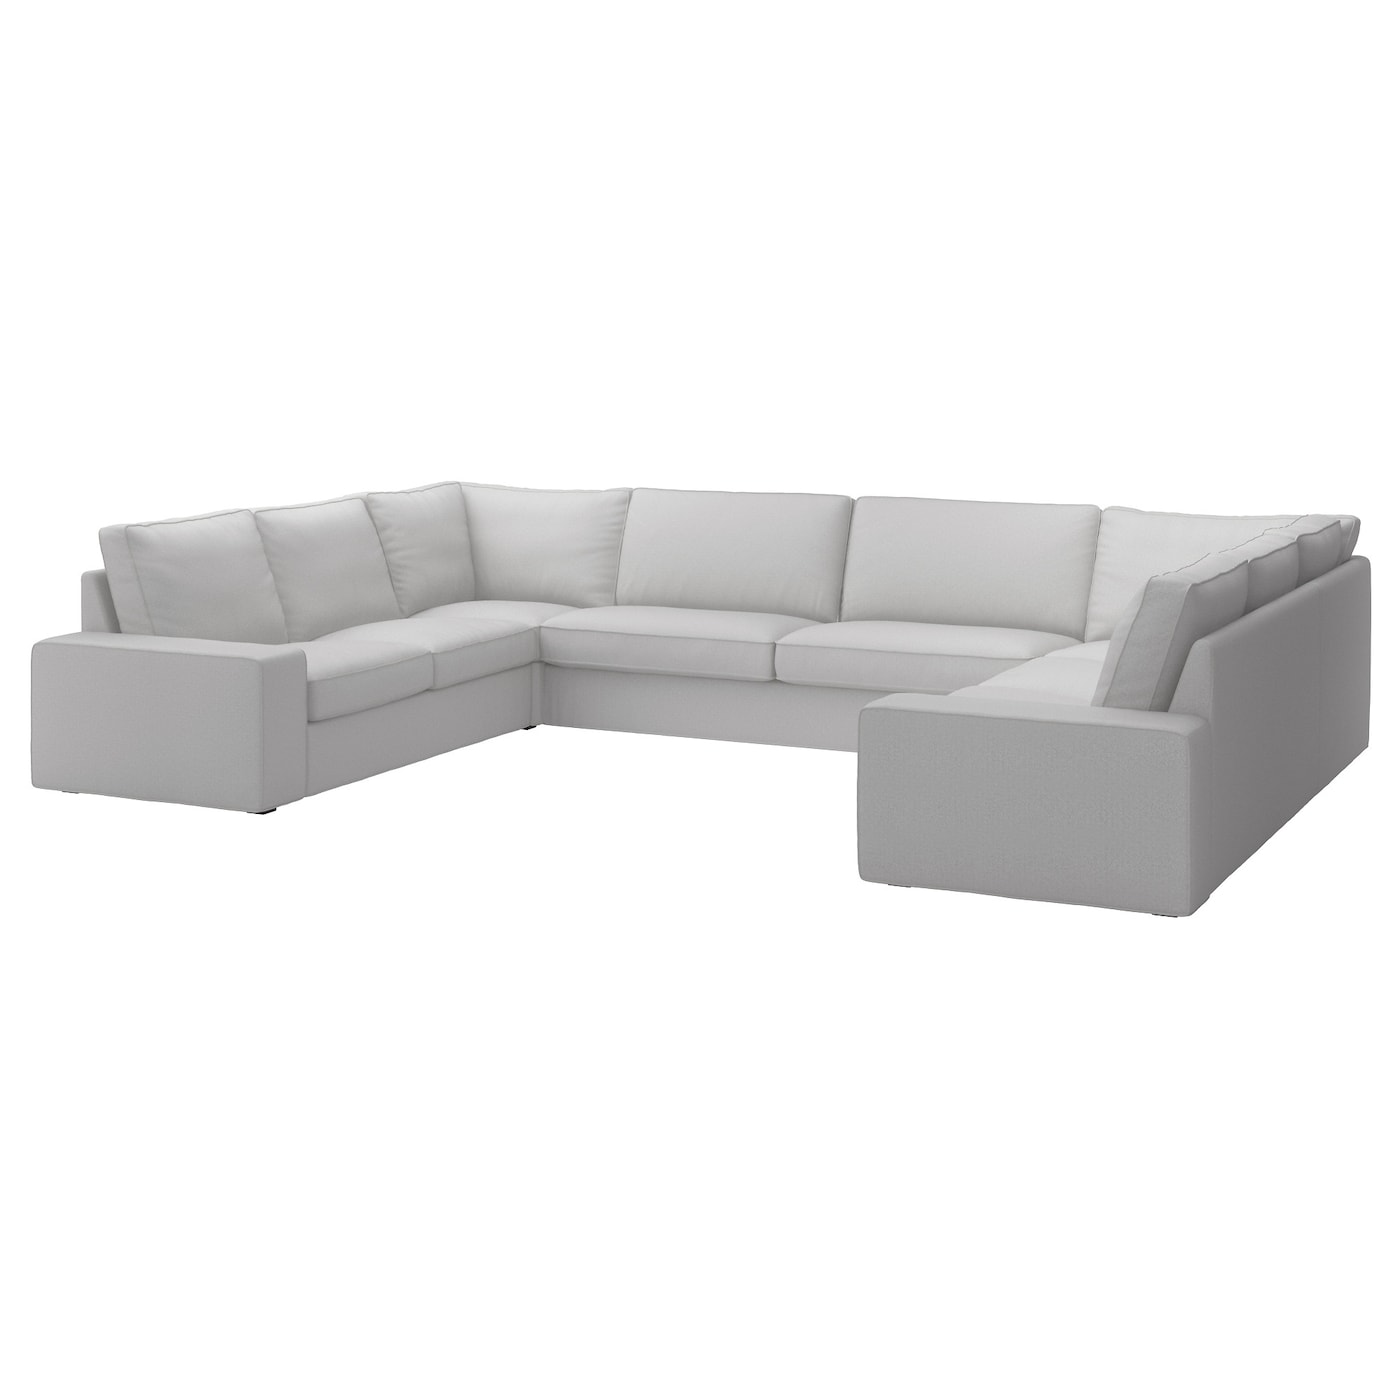 kivik sofa ushaped seaterramna light grey ikea